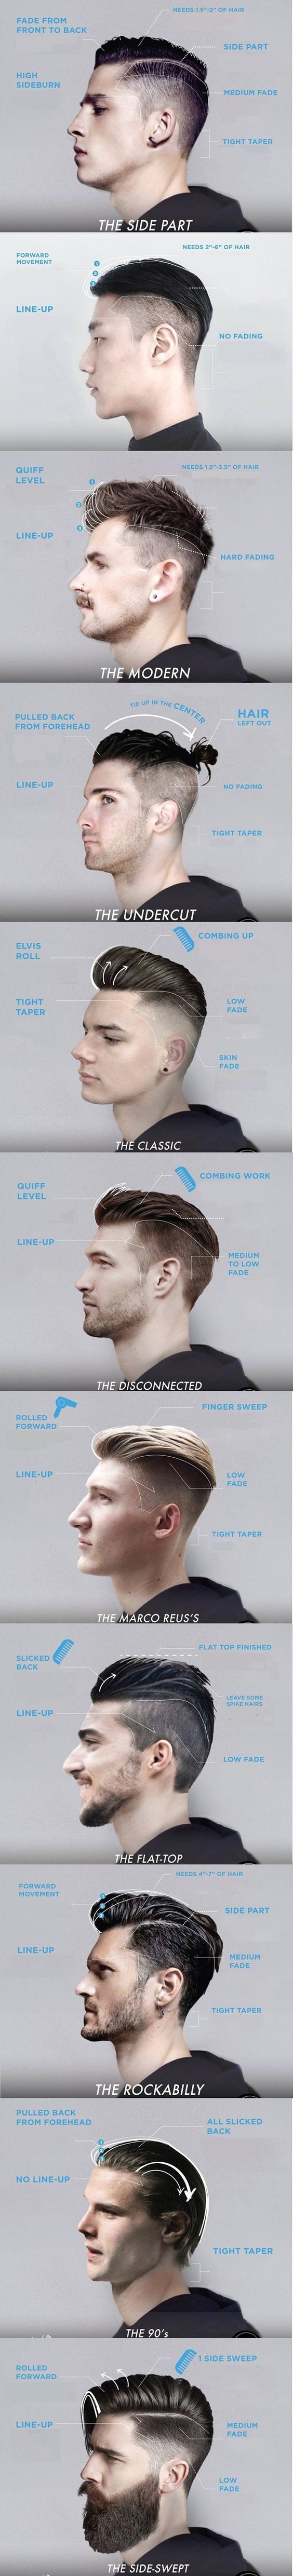 Here's a list of popular styles that we are seeing a lot on men all over social media, from a traditional side cut…